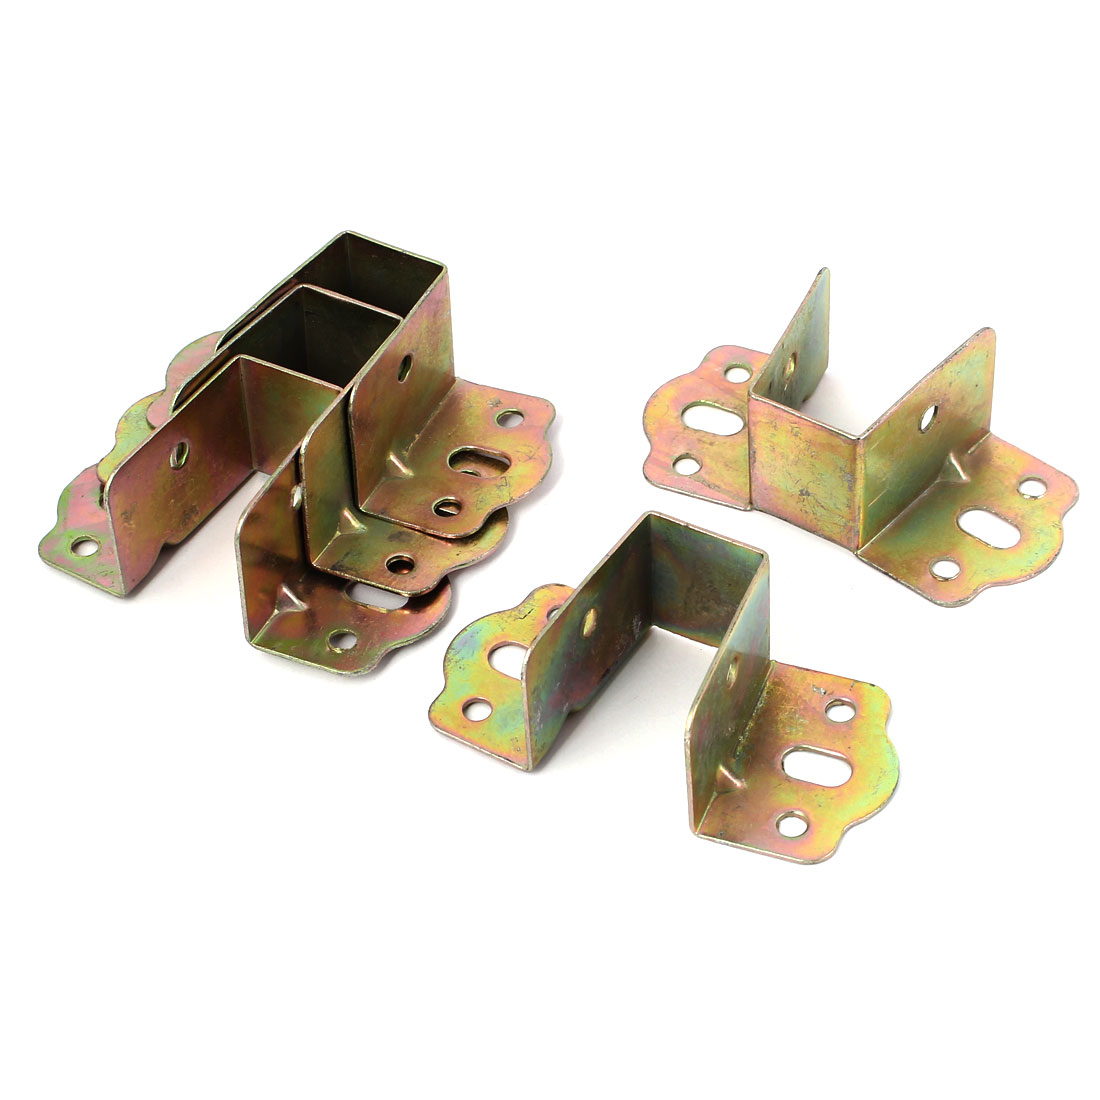 Furniture Fittings 8 Holes U Shaped Metal Bed Angle Brackets Supporters 5 Pcs